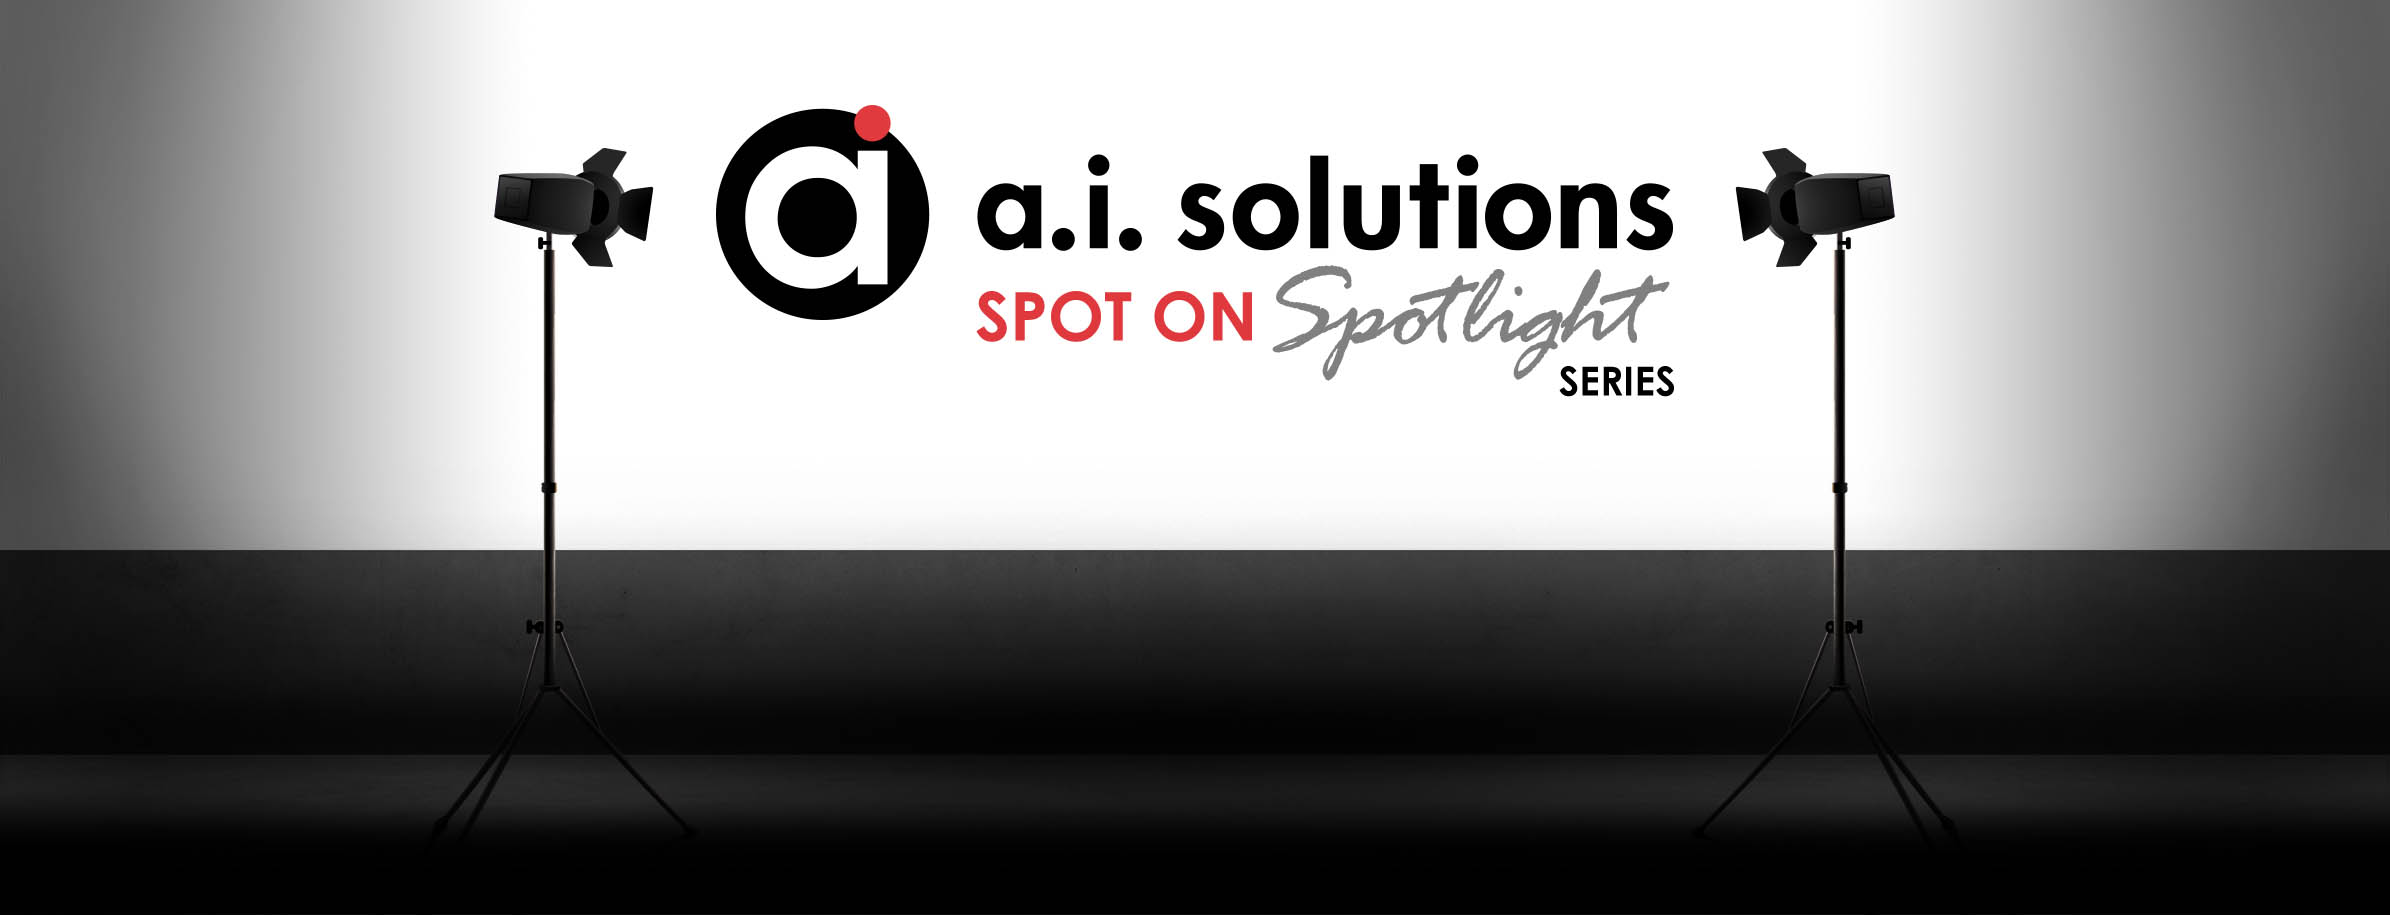 a.i. solutions spot on